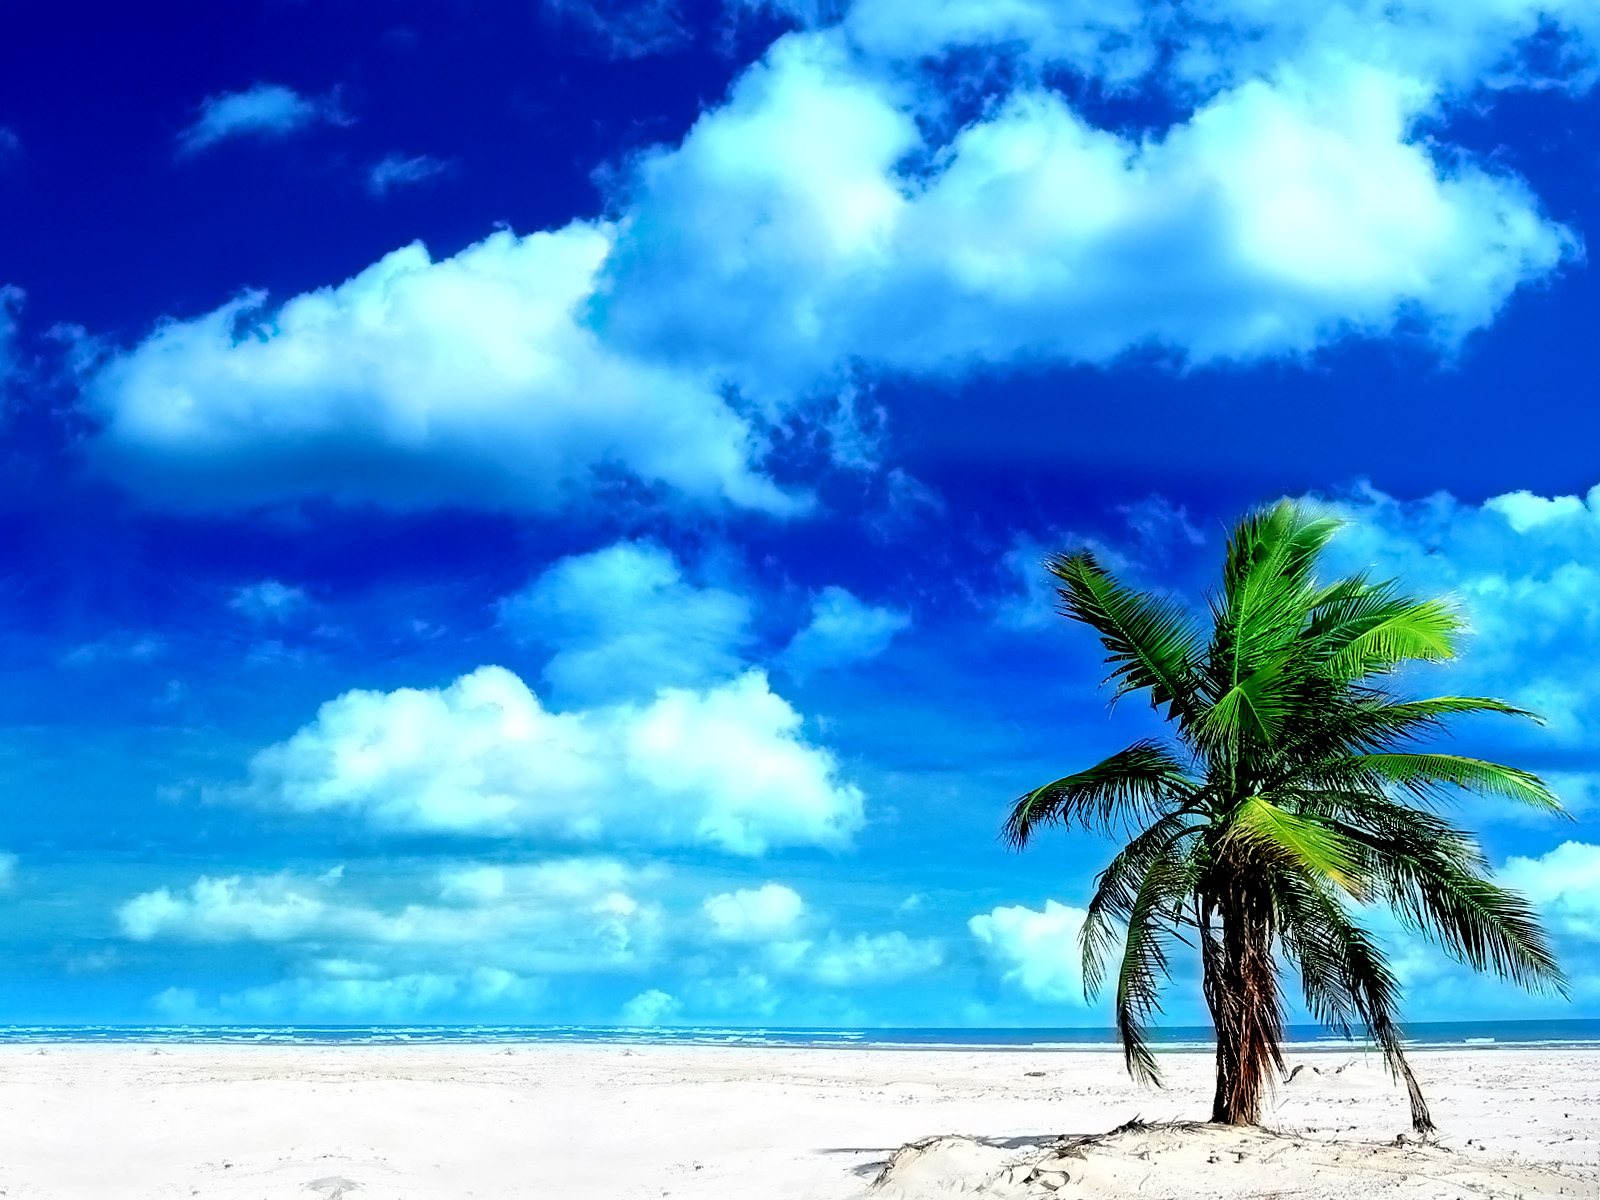 http://2.bp.blogspot.com/-Hx2kXi69fA4/UD0kaosu9rI/AAAAAAAABR0/Q76fgwmnOtI/s1600/the_best_top_desktop_beach_wallpapers_hd_2-normal.jpg